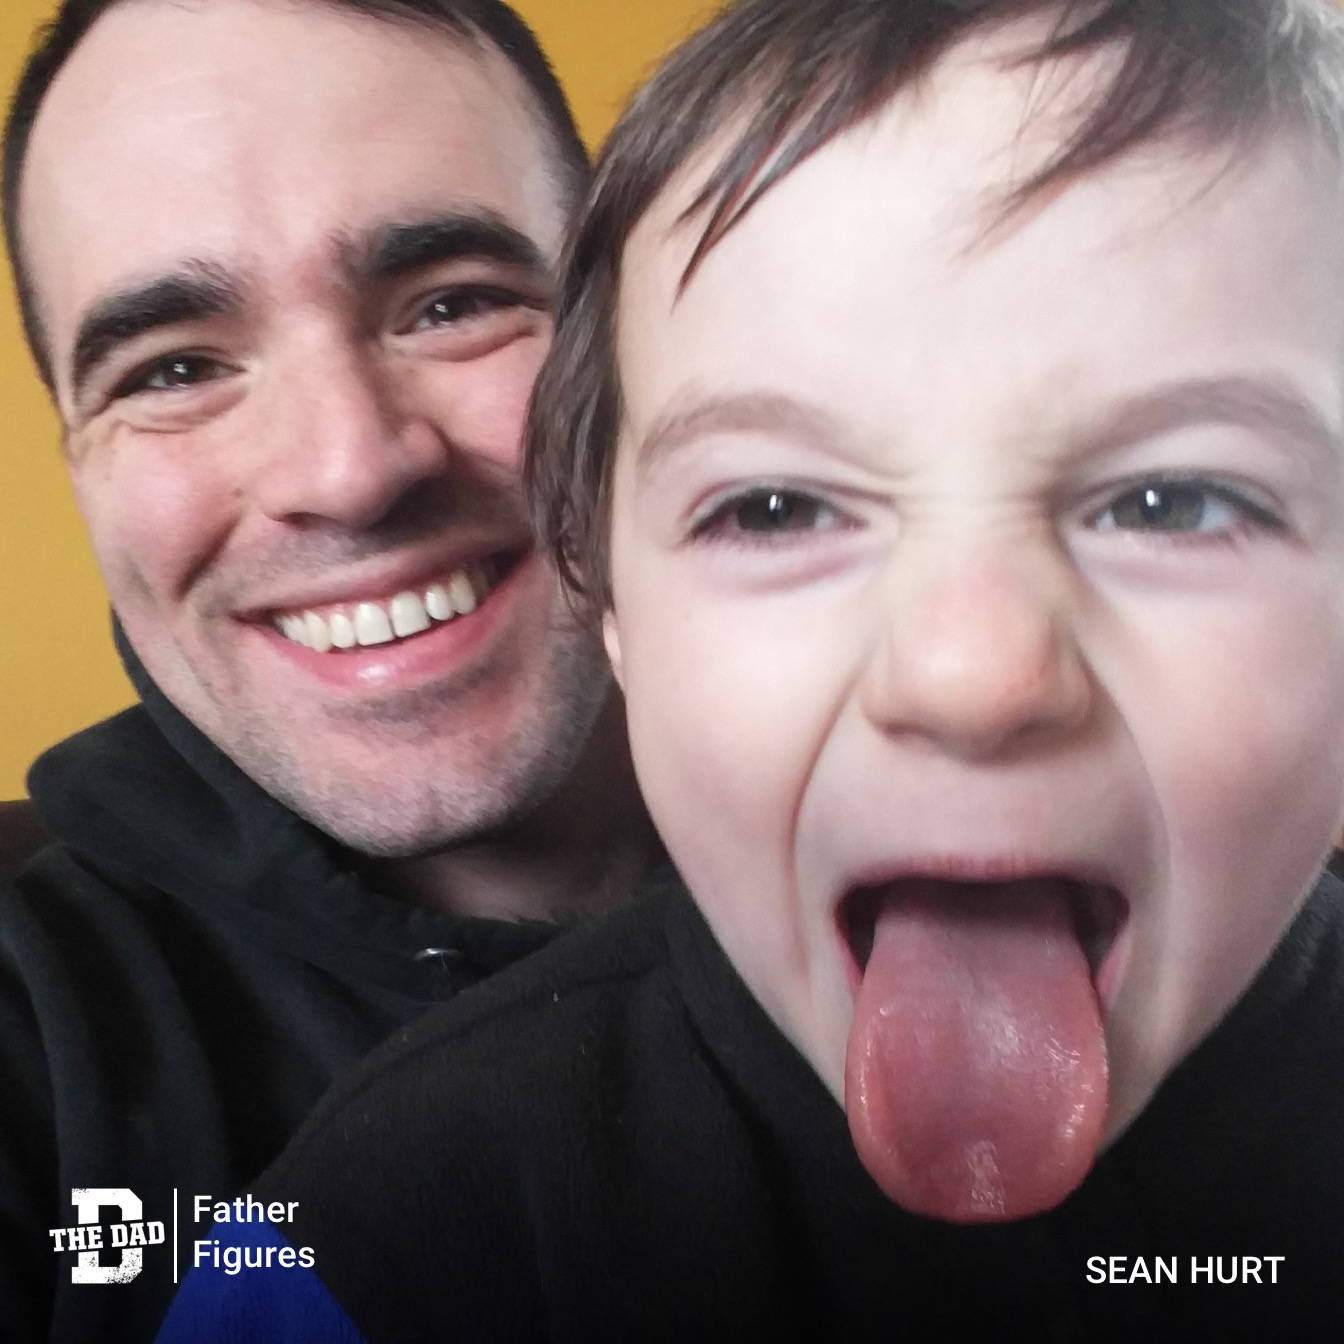 father figures, lying, dishonest, blue tongue, honesty, truth, parenting tip, parenting hack